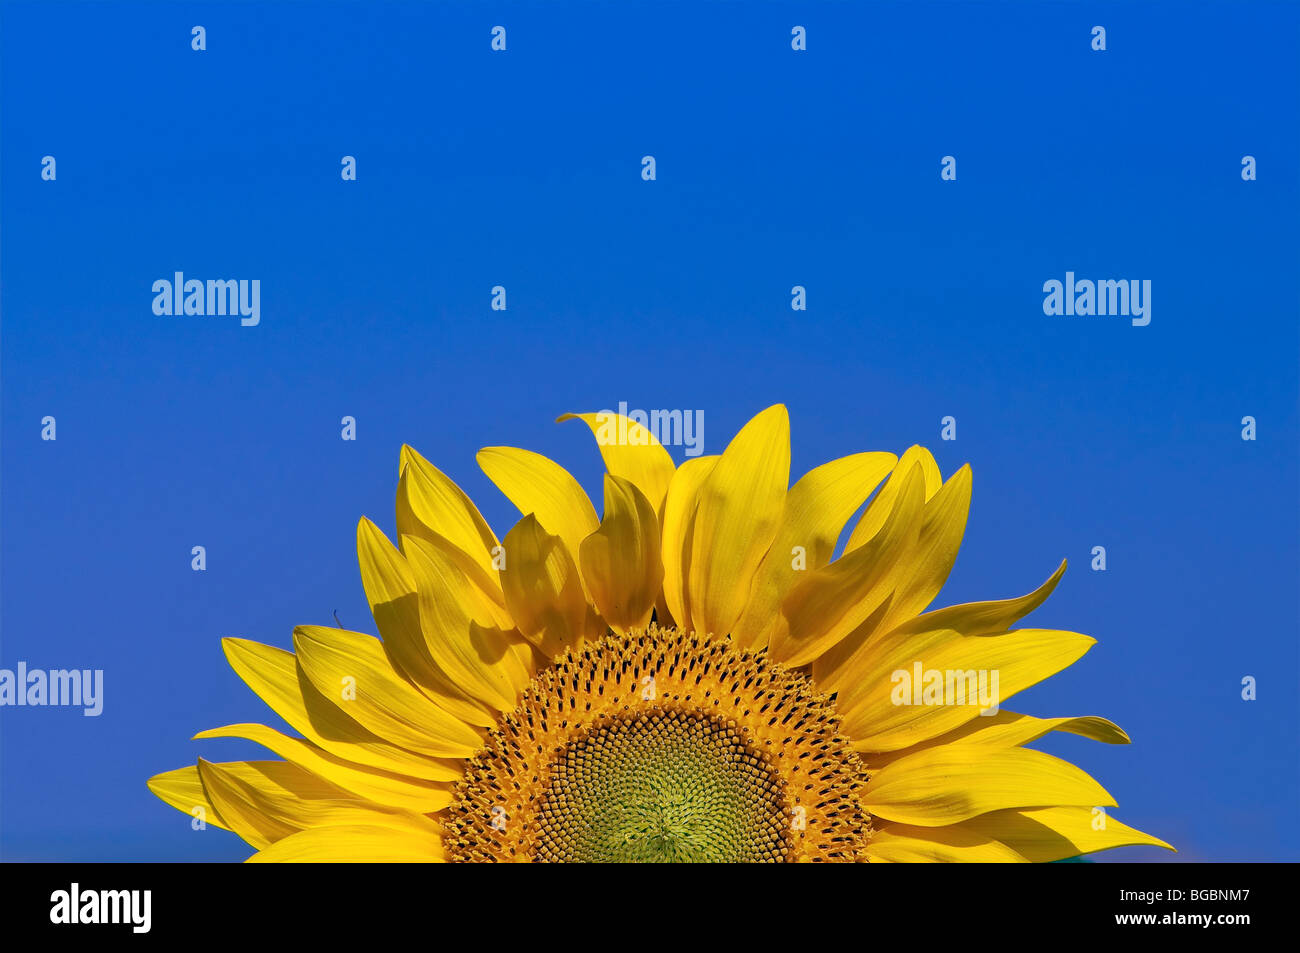 Sun flower and blue sky - Stock Image